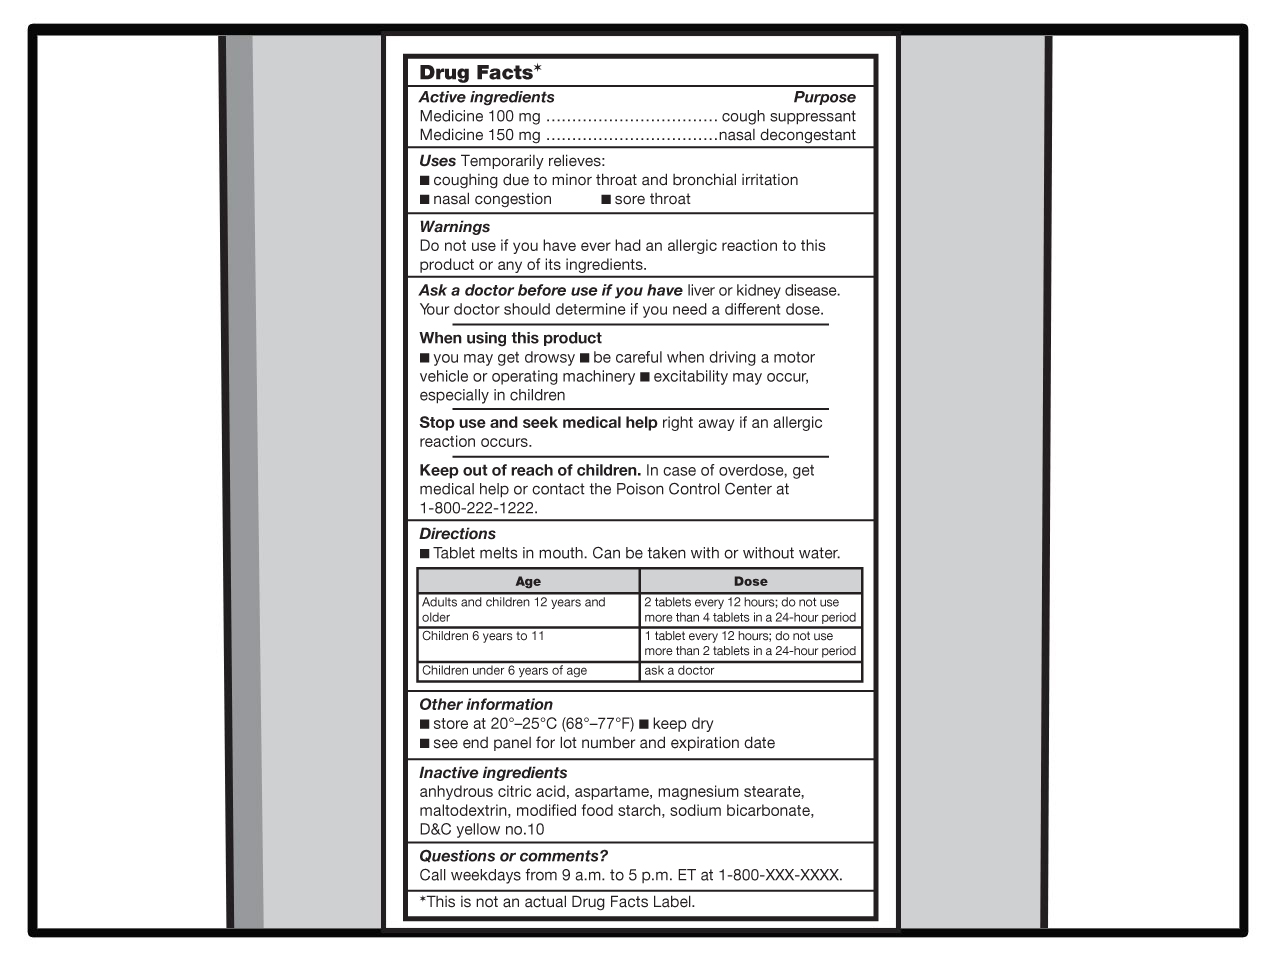 Worksheet Ideas ~ Lesson Reading And Understanding The Drug